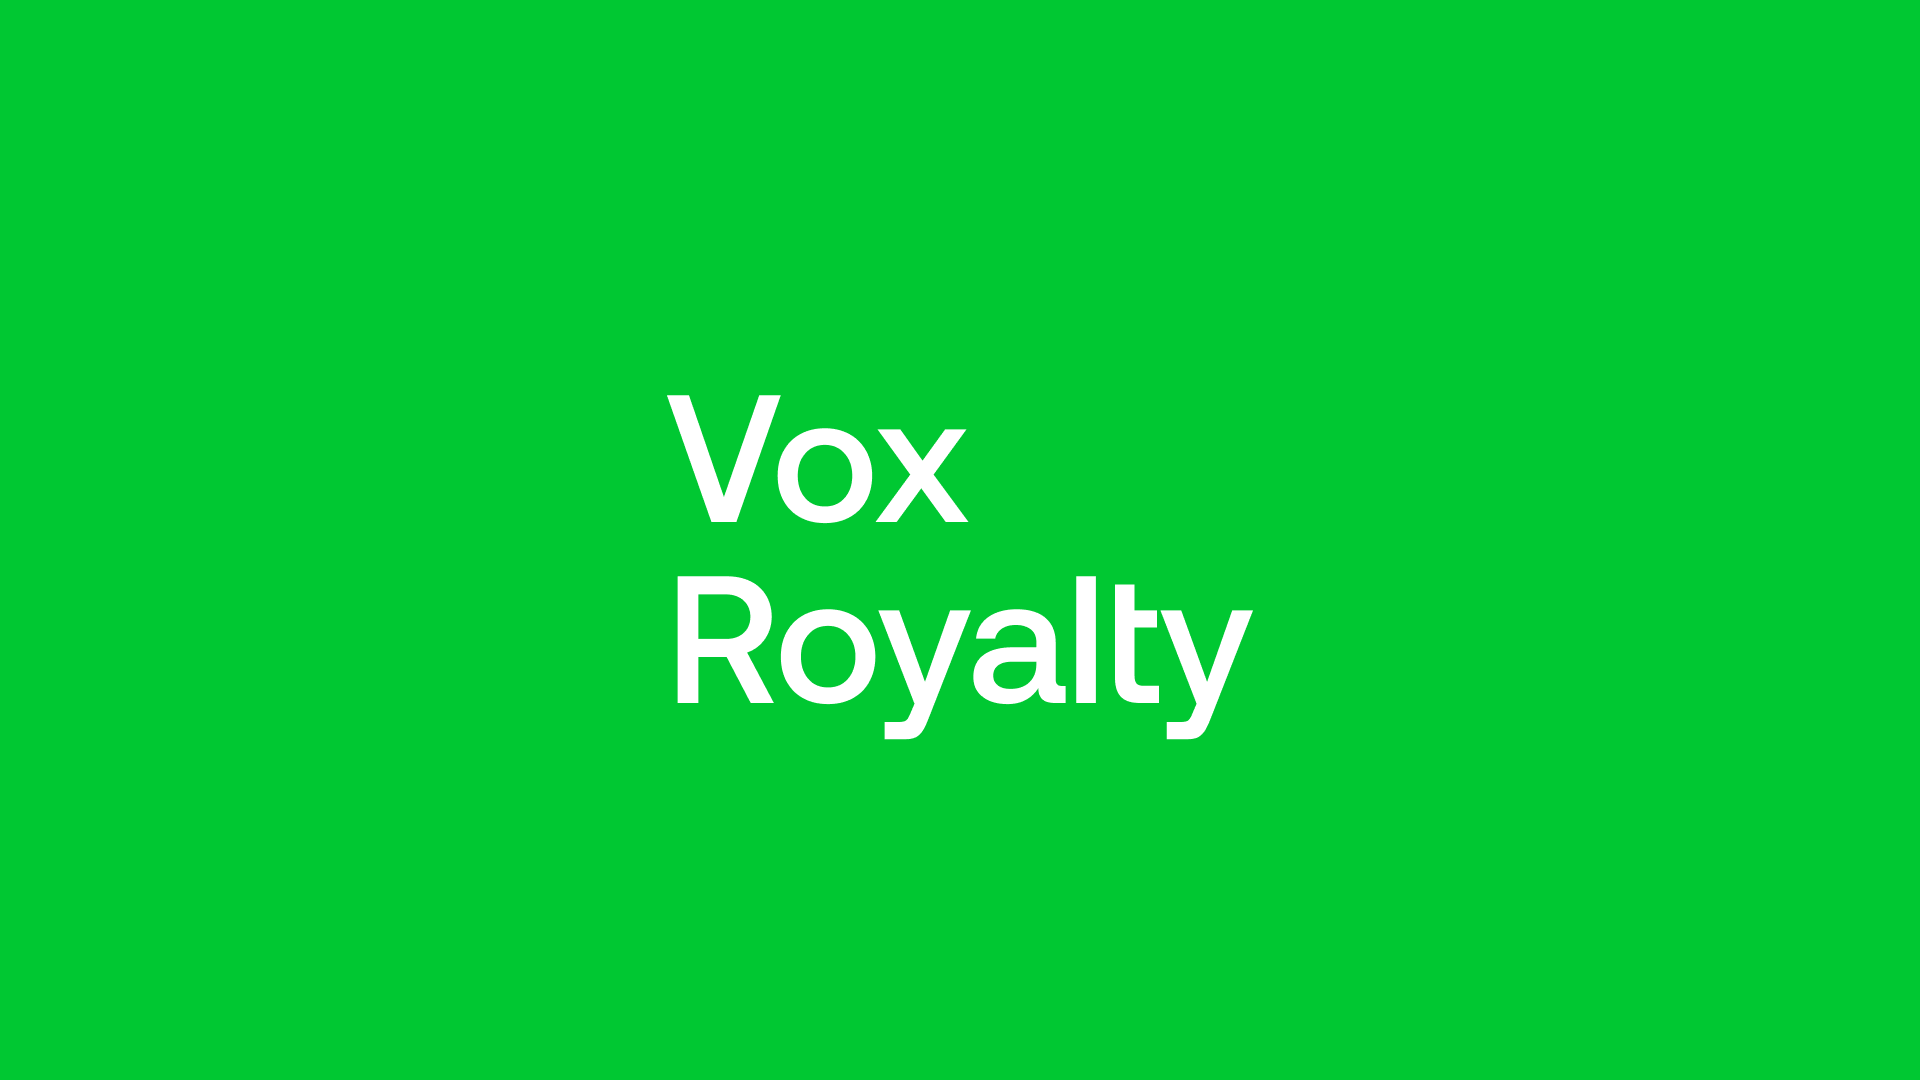 Vox Royalty (VOX) - Disciplined Anti Inflationary Investing!